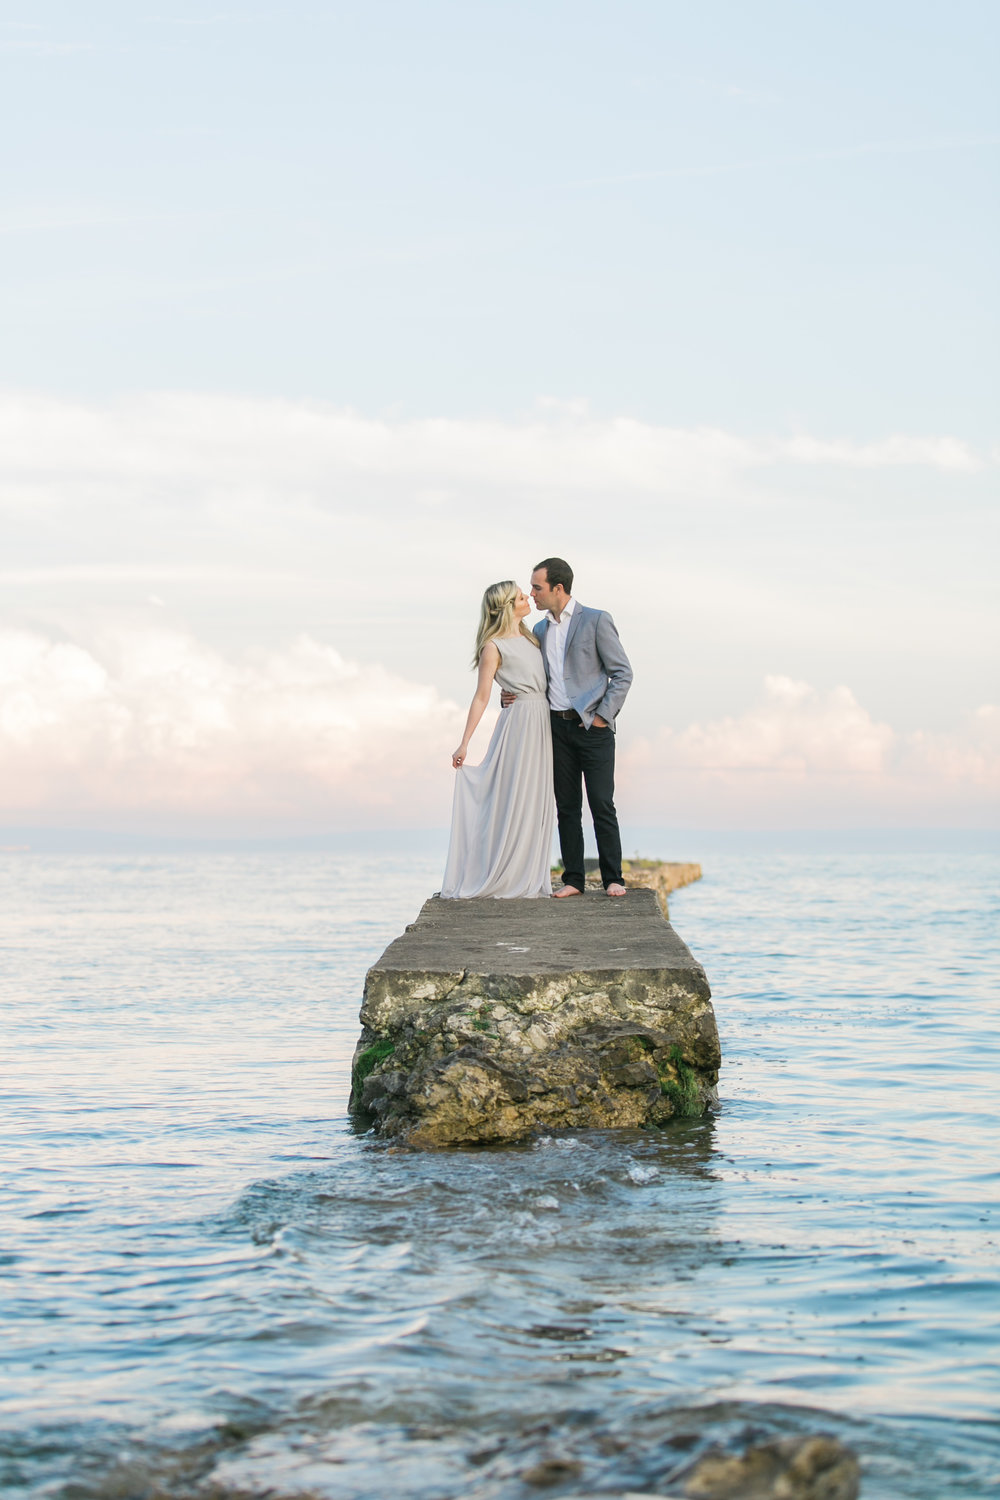 amanda cowley events niagara wedding planner beach engagement session sunset romantic on a pier